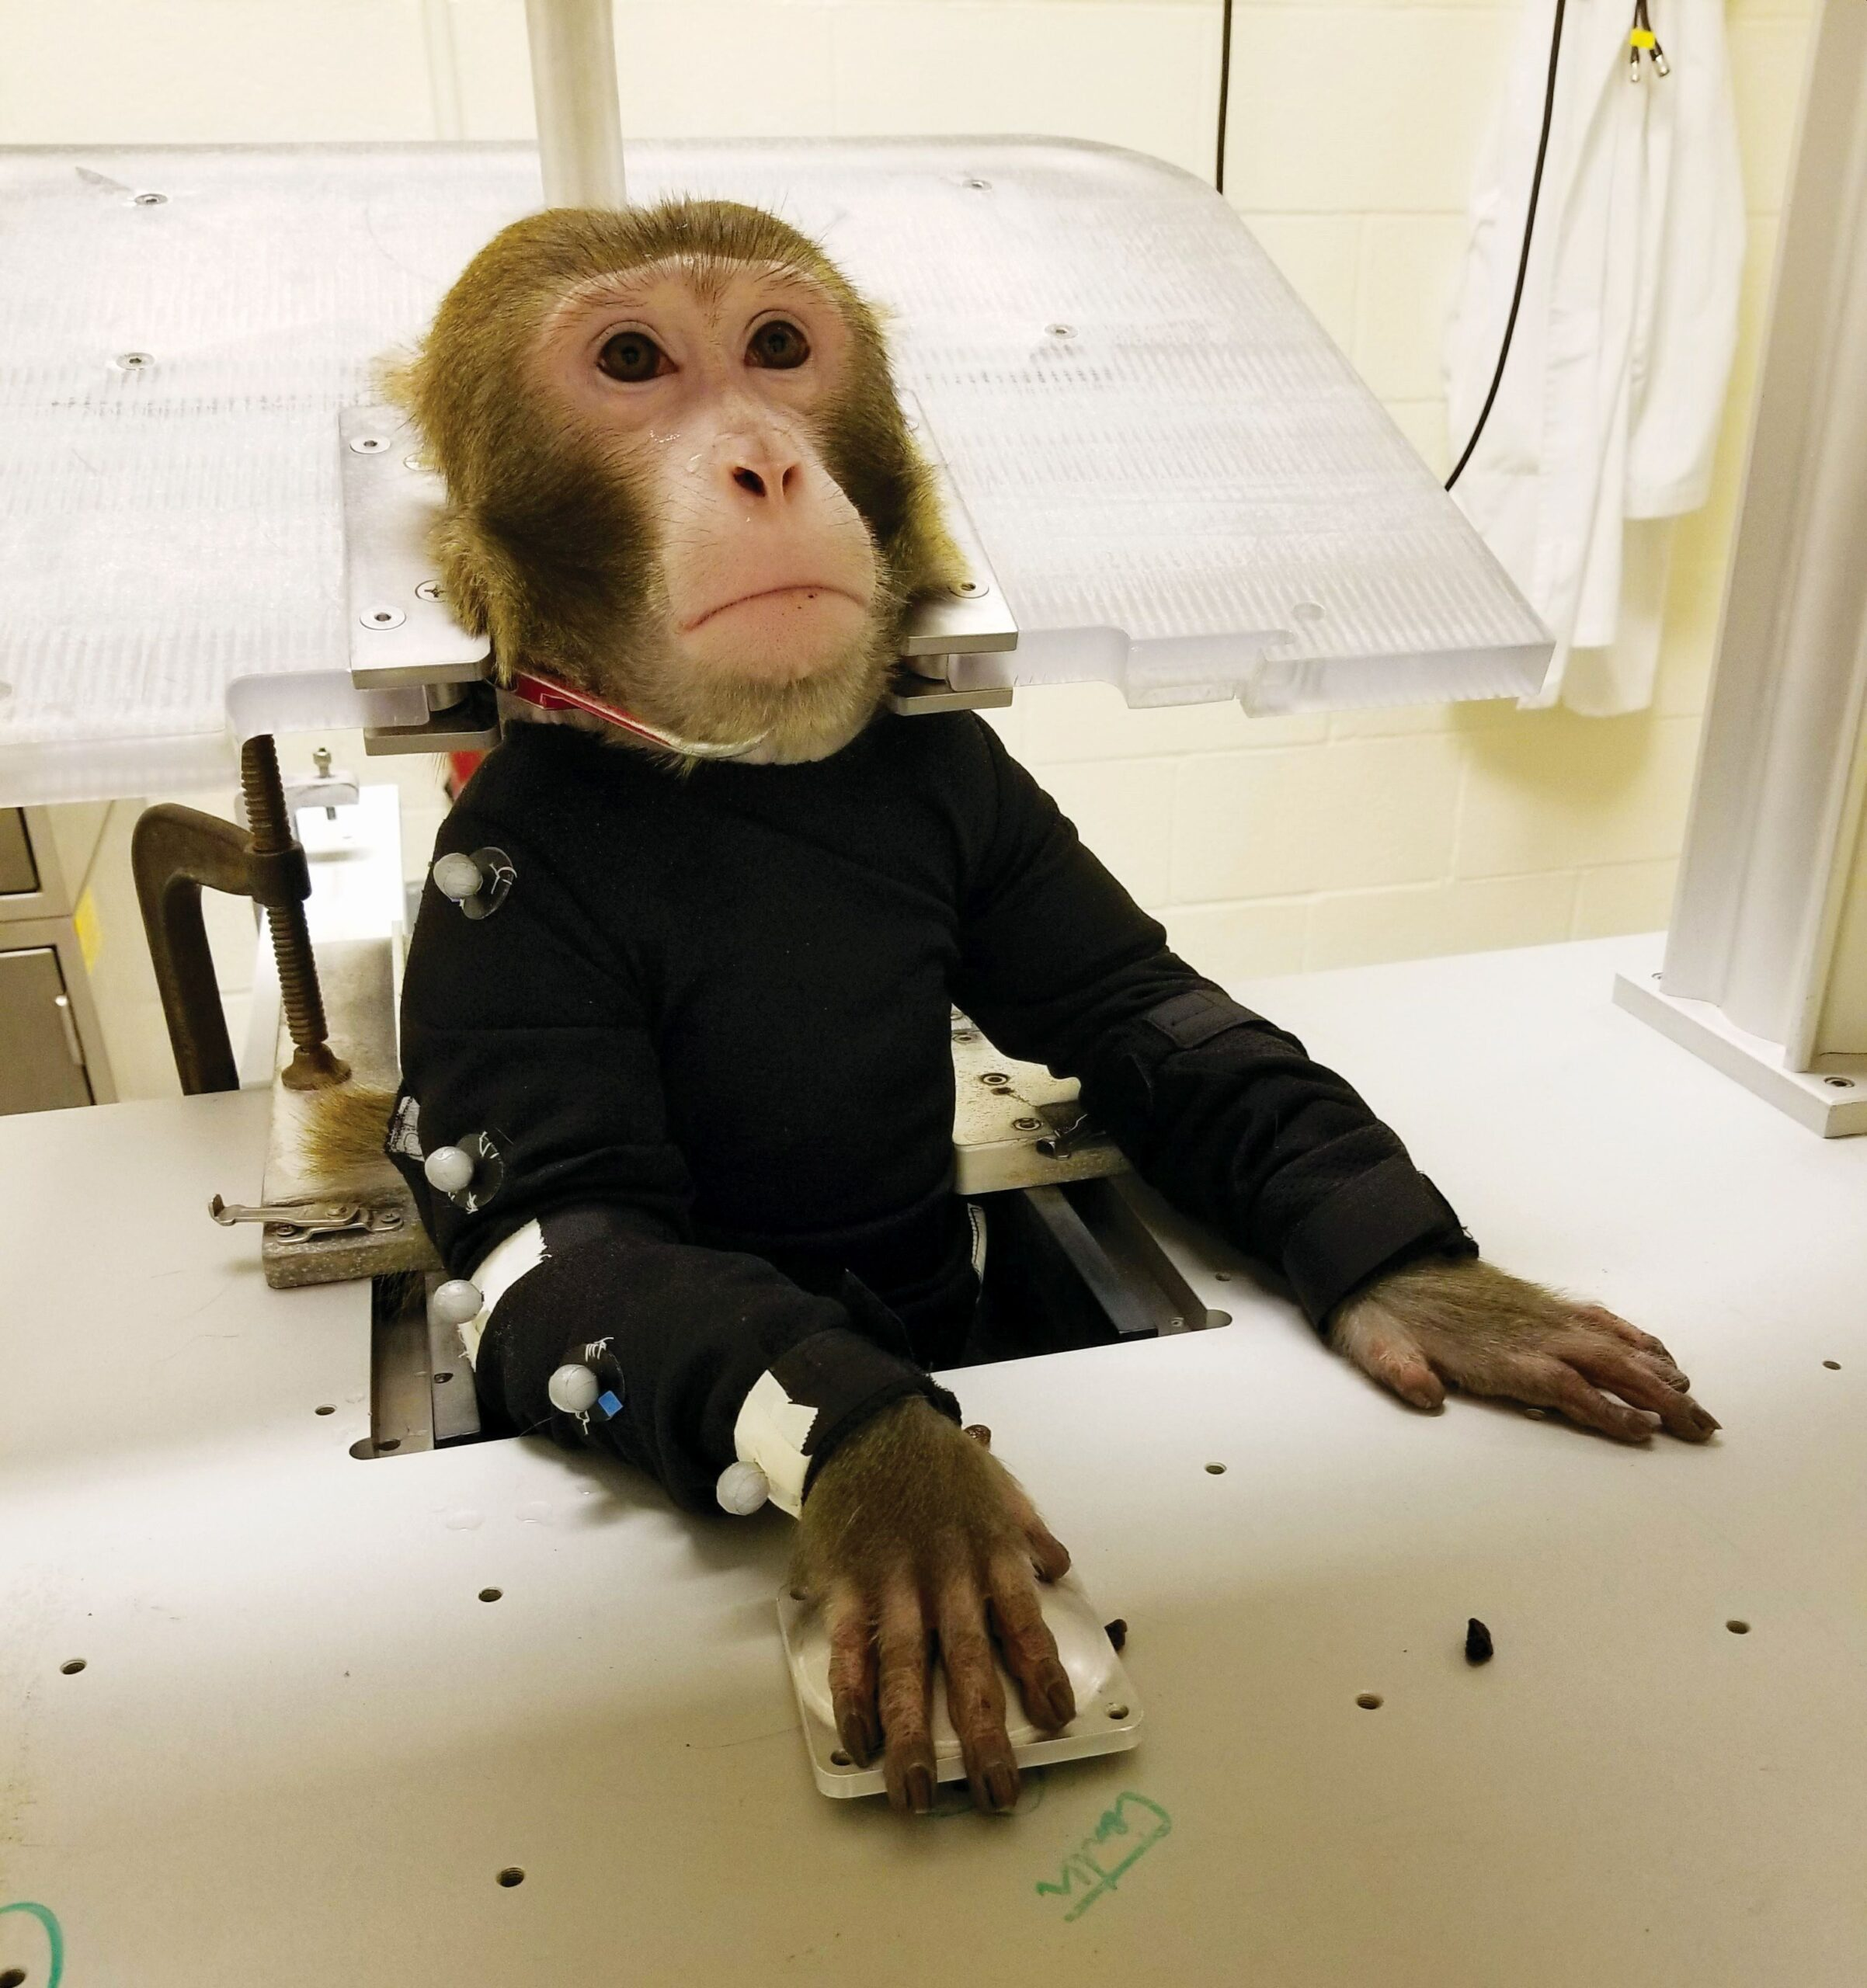 Photo #2 of a monkey in restraints at Arizona State University's primate research laboratory